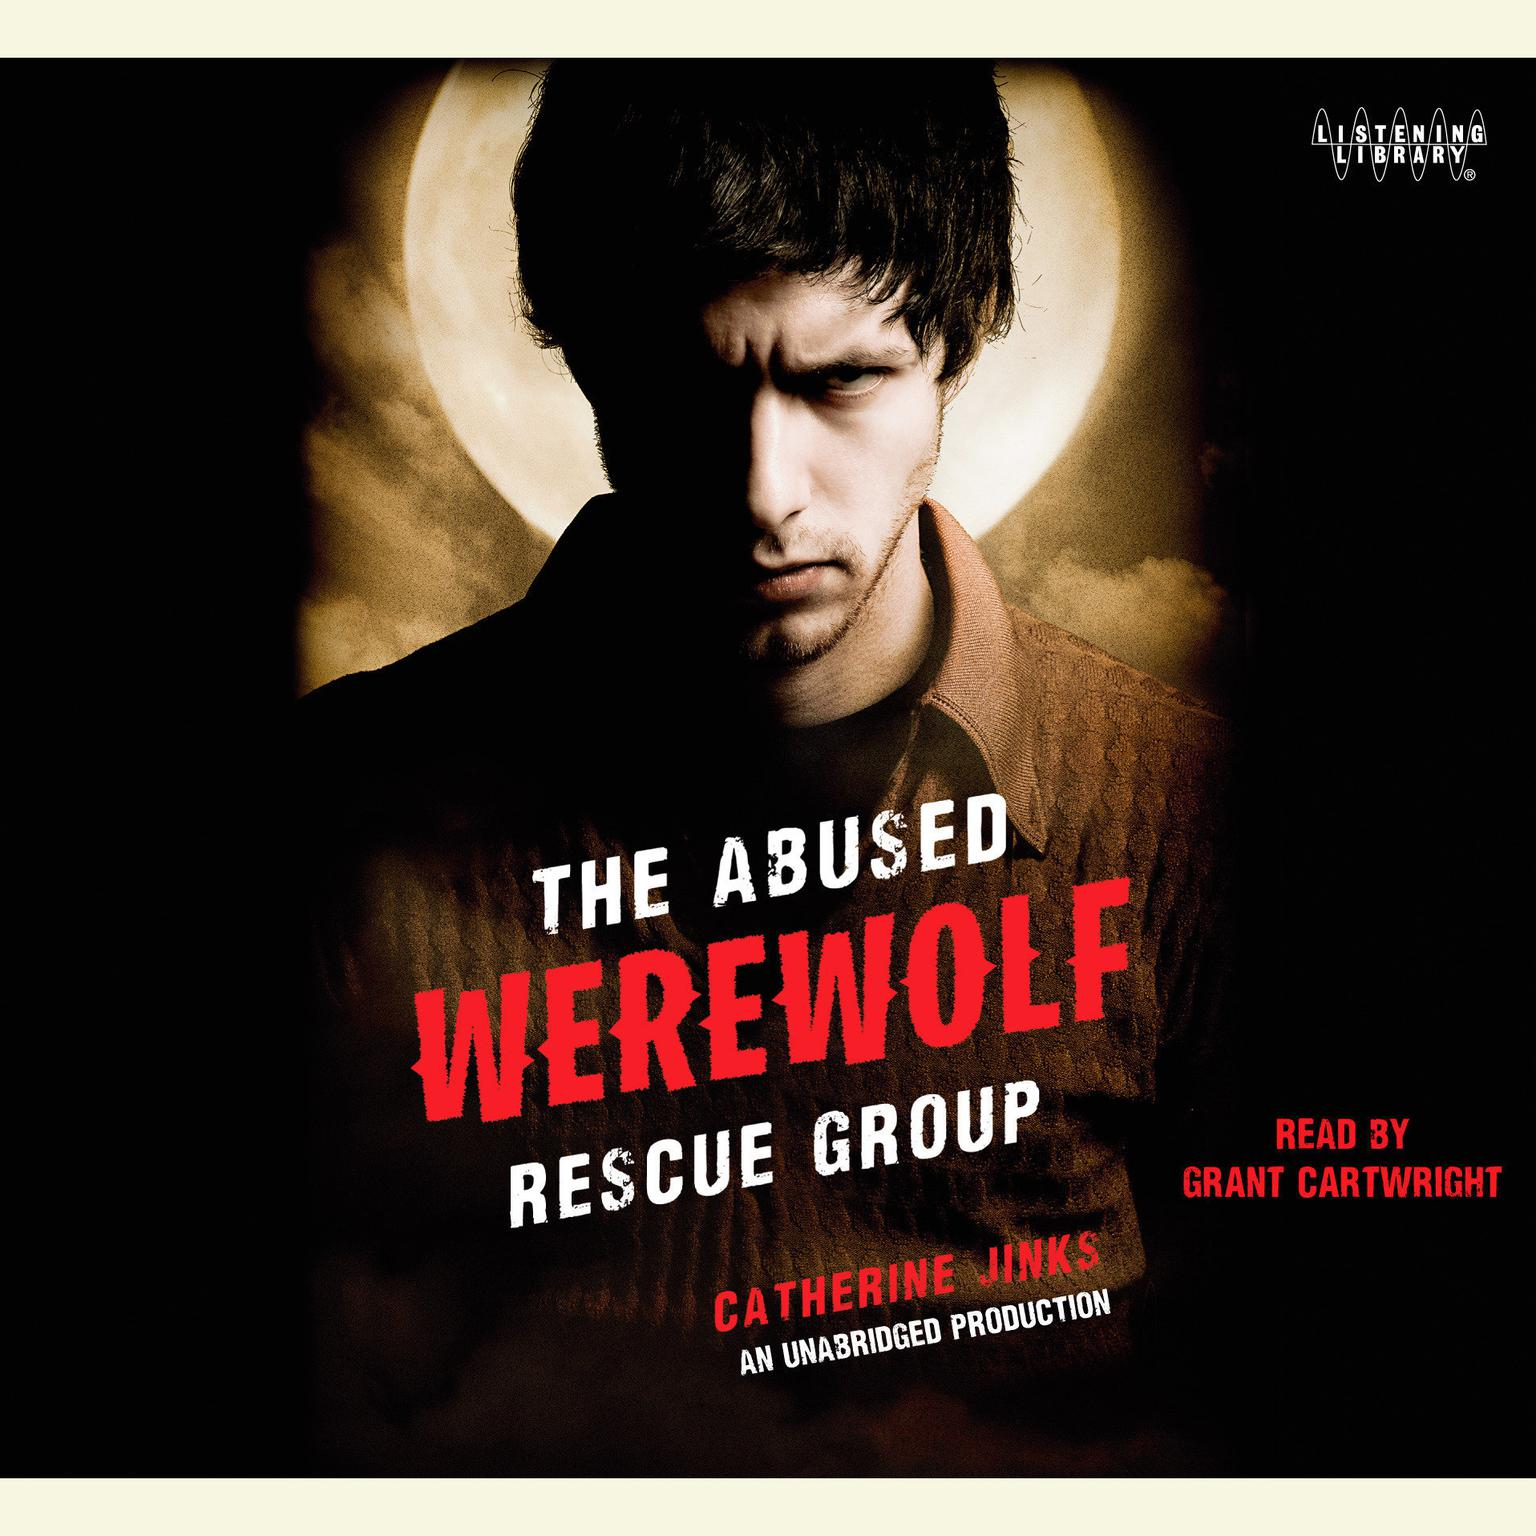 Printable The Abused Werewolf Rescue Group Audiobook Cover Art